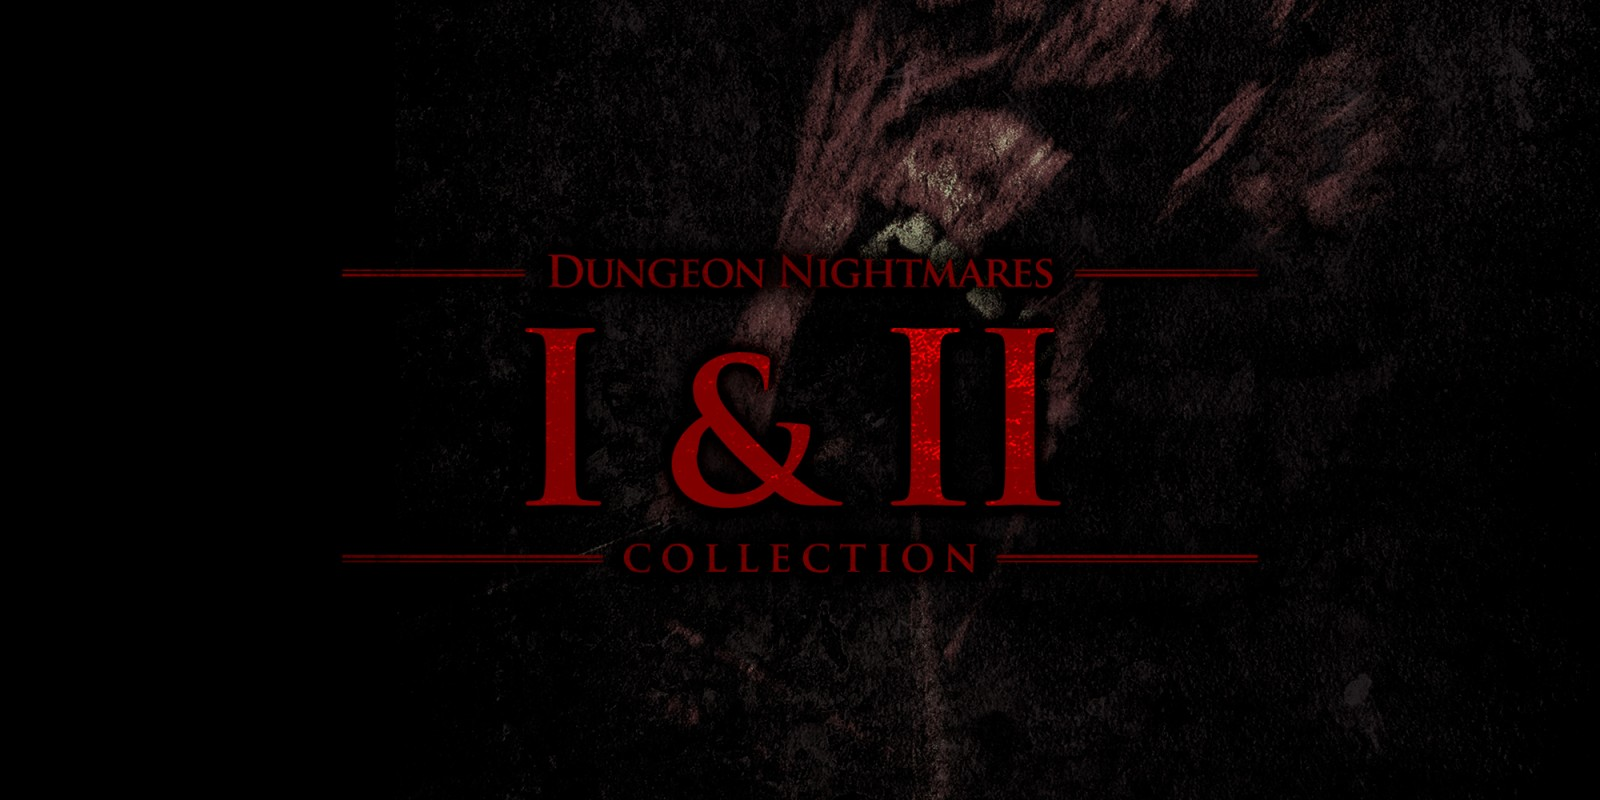 Dungeon Nightmares 1+2 Collection